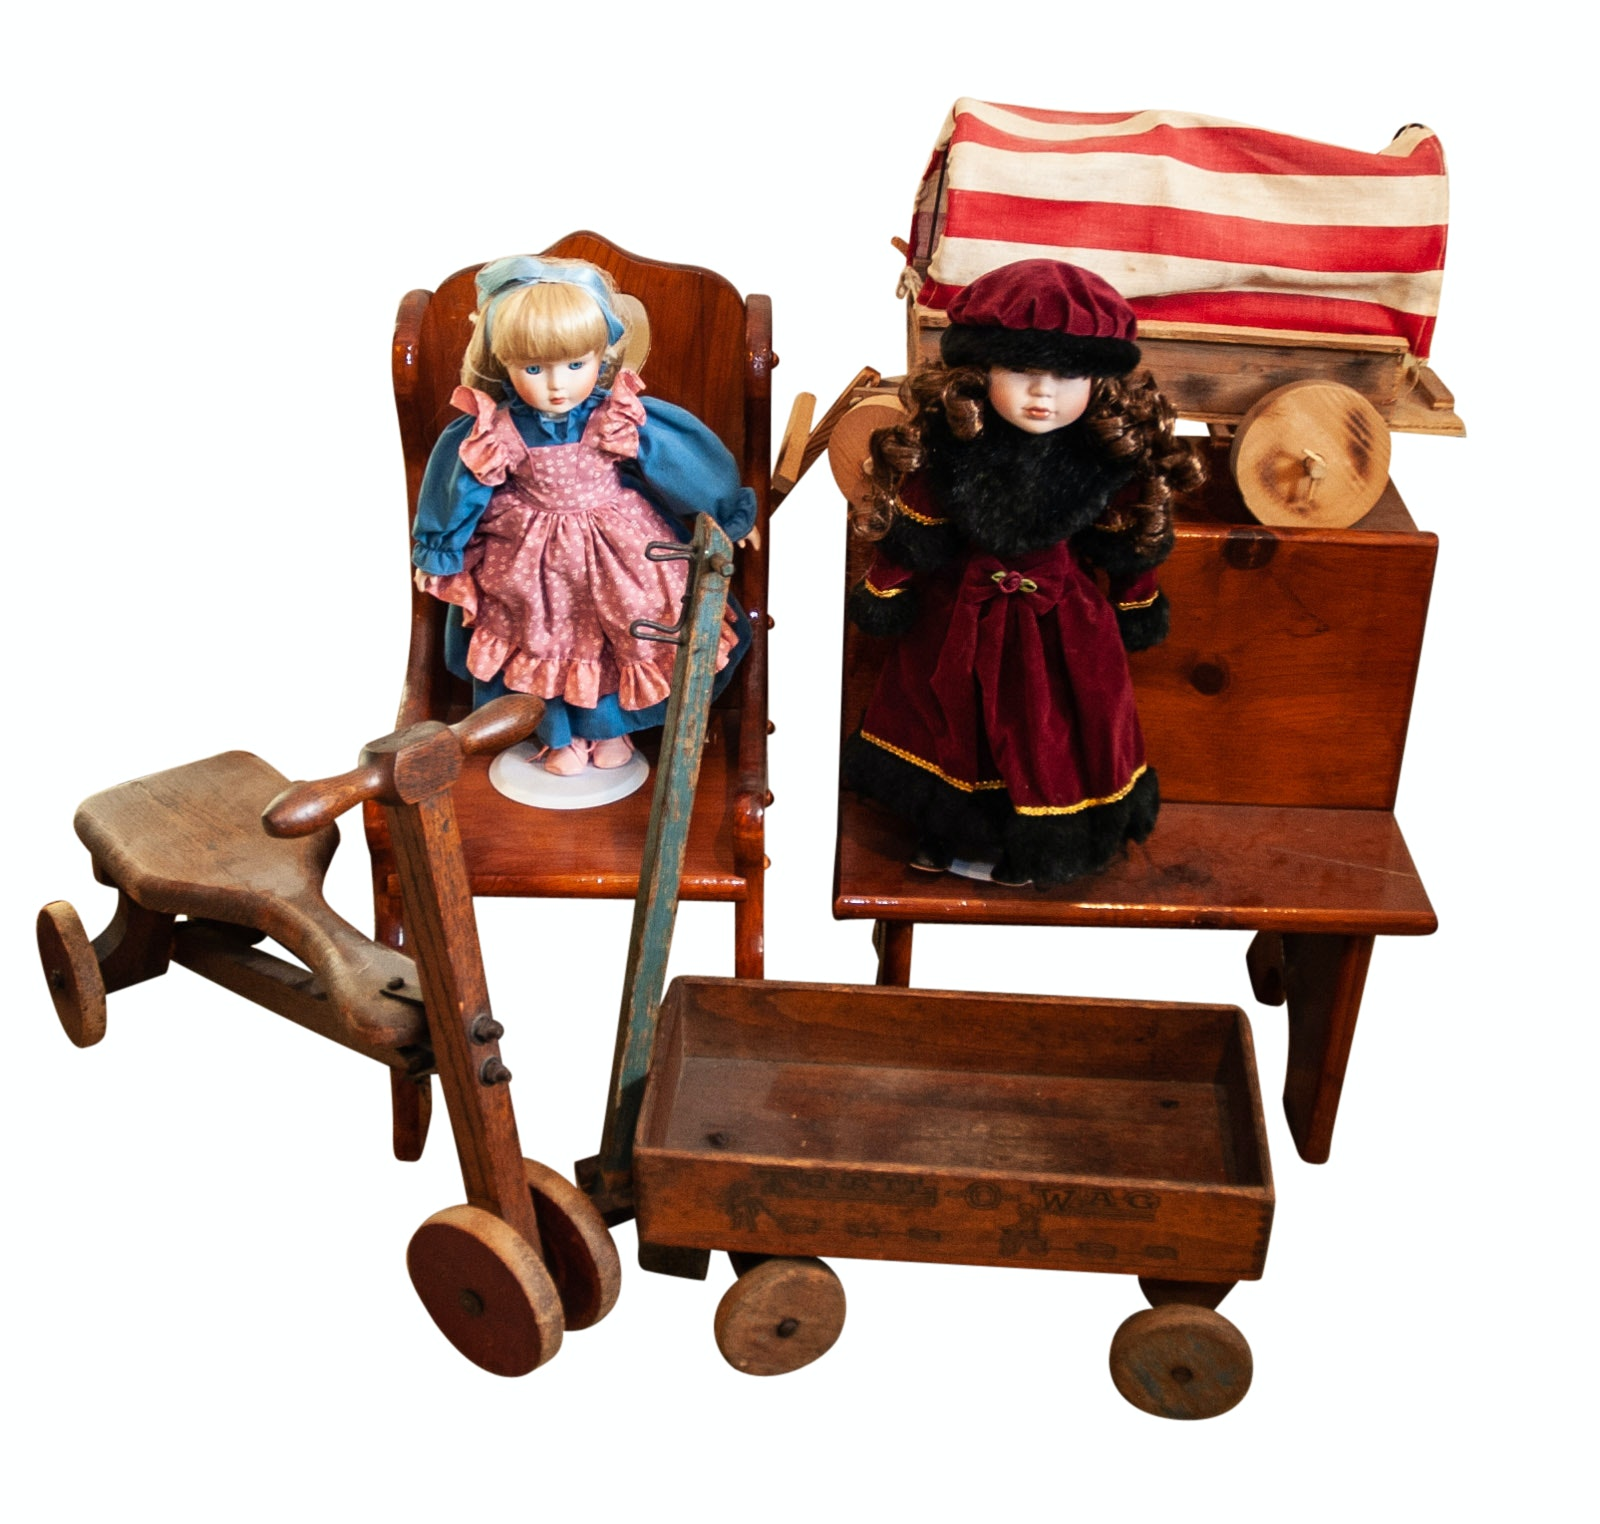 Pair of Bisque Hand-Painted Dolls and Wooden Doll Furniture